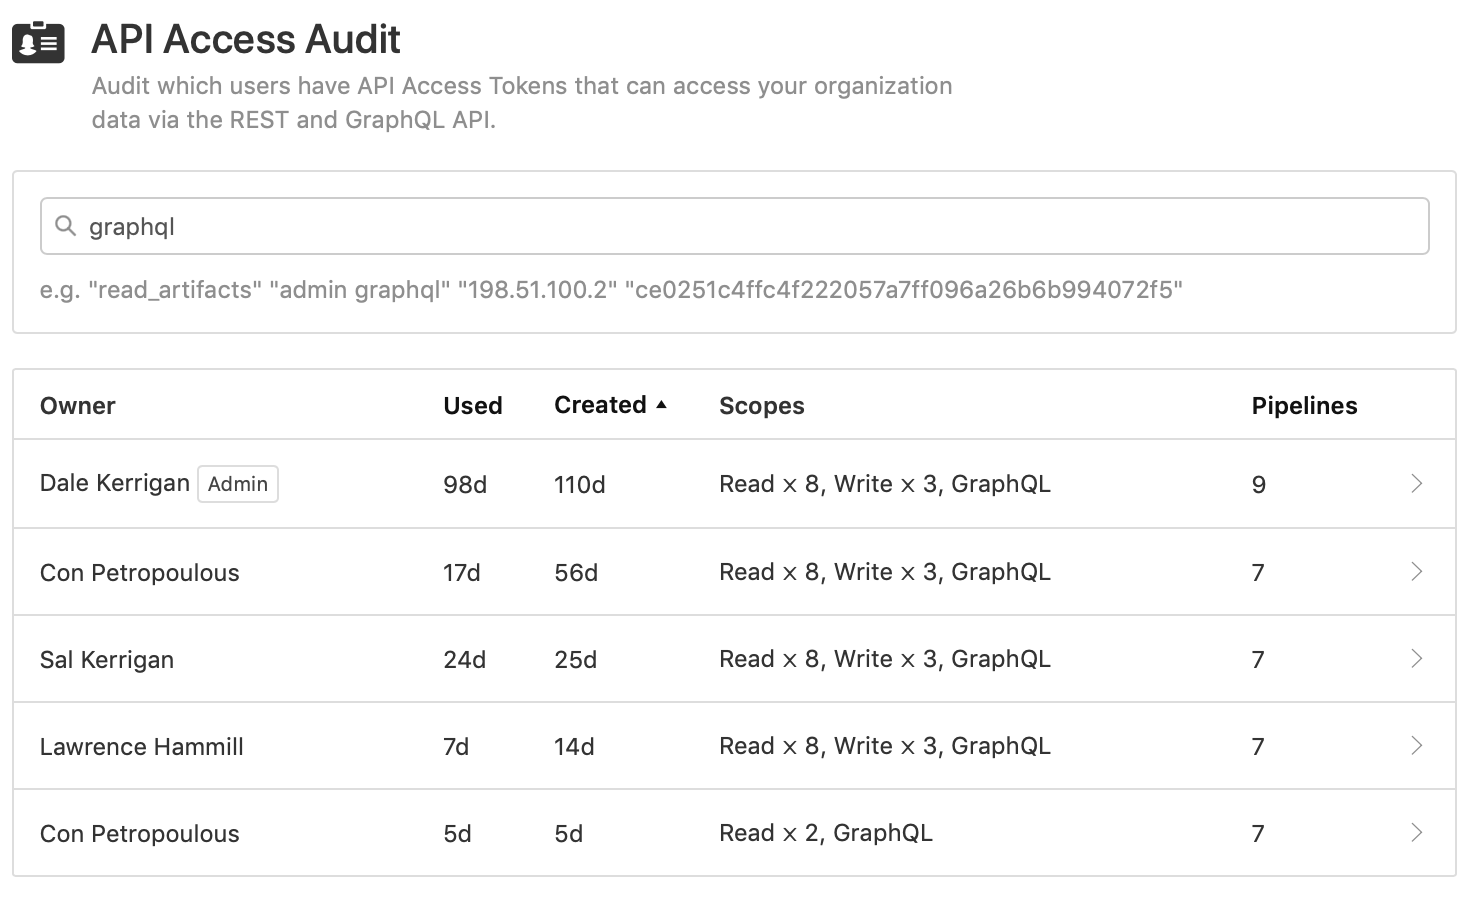 Screenshot of the API Access Audit page displaying a filtered list of tokens that have the GraphQL scope